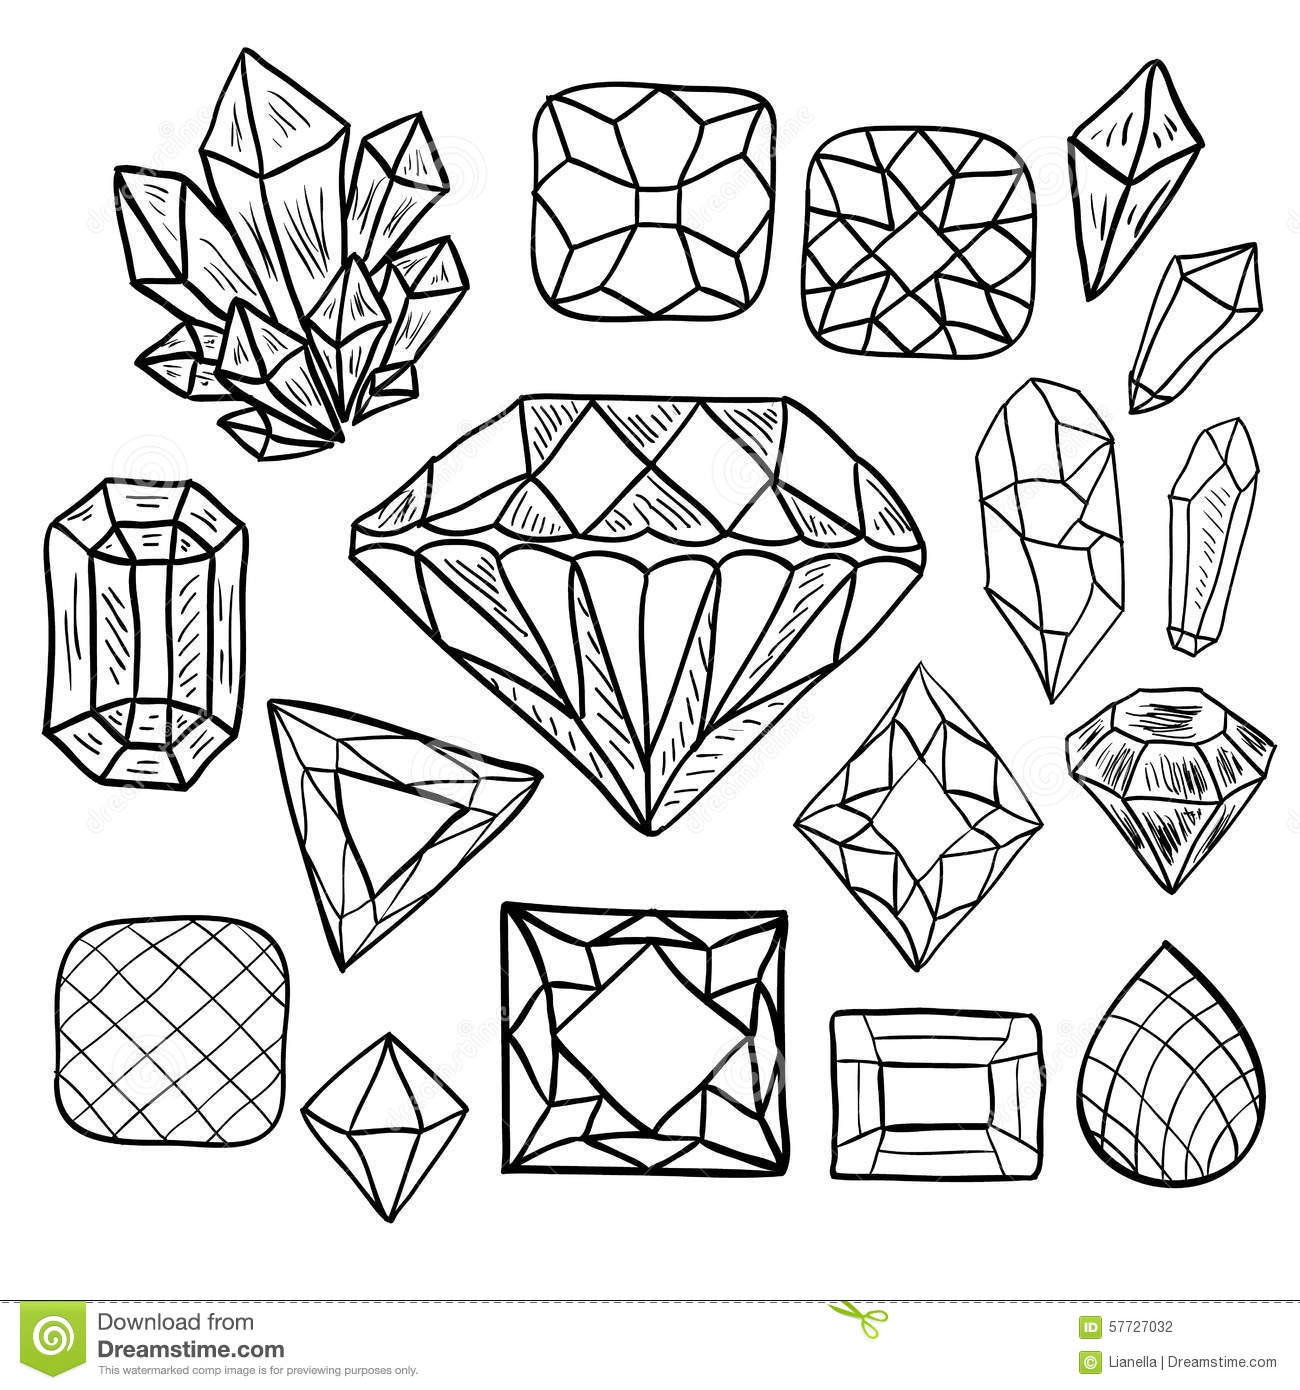 gem coloring pages - photo #33